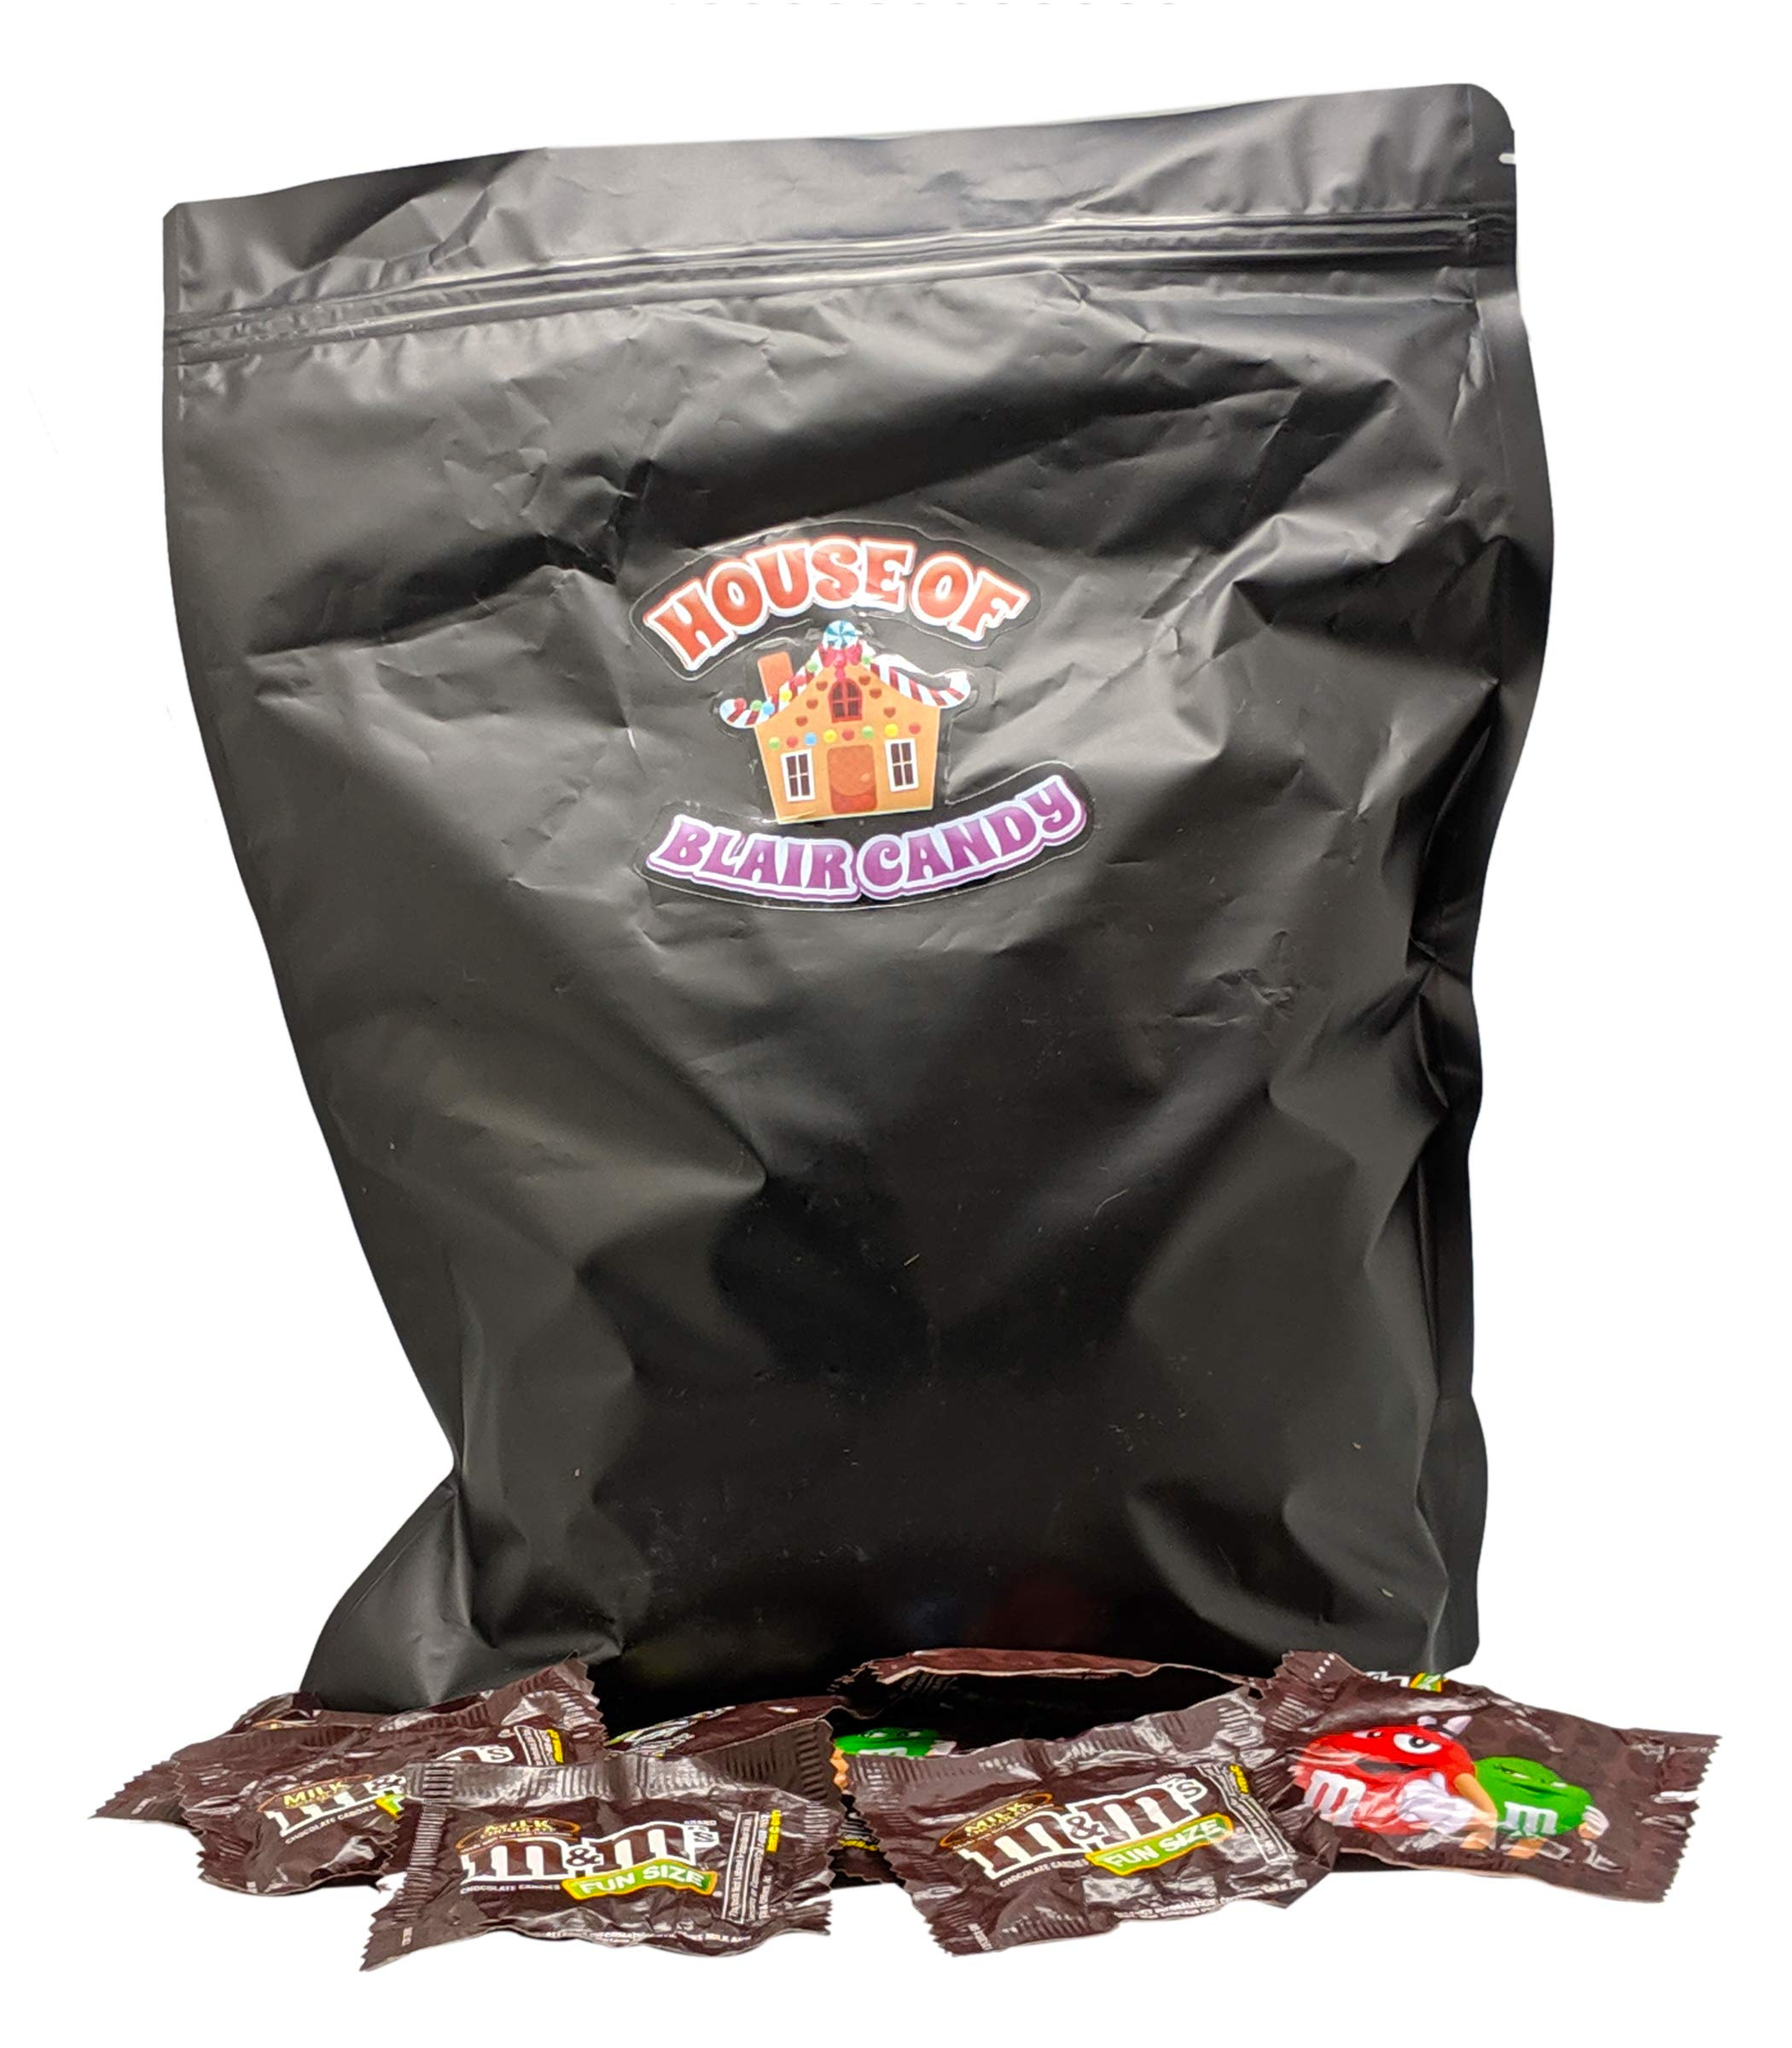 M&Ms Milk Chocolate Fun Size Candy - 5 LB (Approx. 160 Fun Size Packs) - Comes in a Sealed/Resealable Bag - Perfect For Parties, Pinata, Office Bowl, Wedding Favors, Easter Baskets by Blair Candy